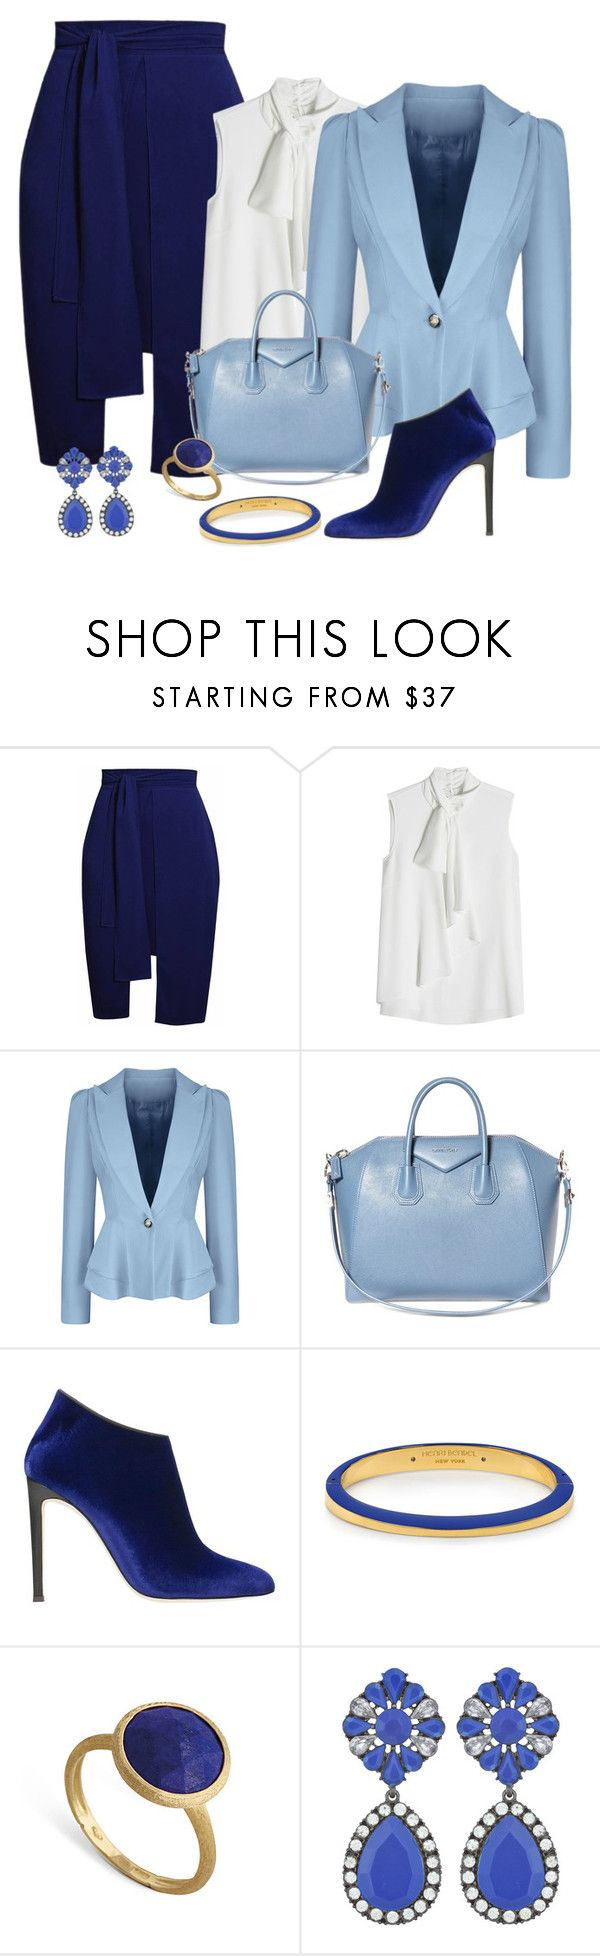 """""""GIRL POWER: Power Look"""" by shamrockclover ❤ liked on Polyvore featuring Alexander McQueen, WithChic, Givenchy, Giuseppe Zanotti, Henri Bendel, Marco Bicego, girlpower and powerlook"""